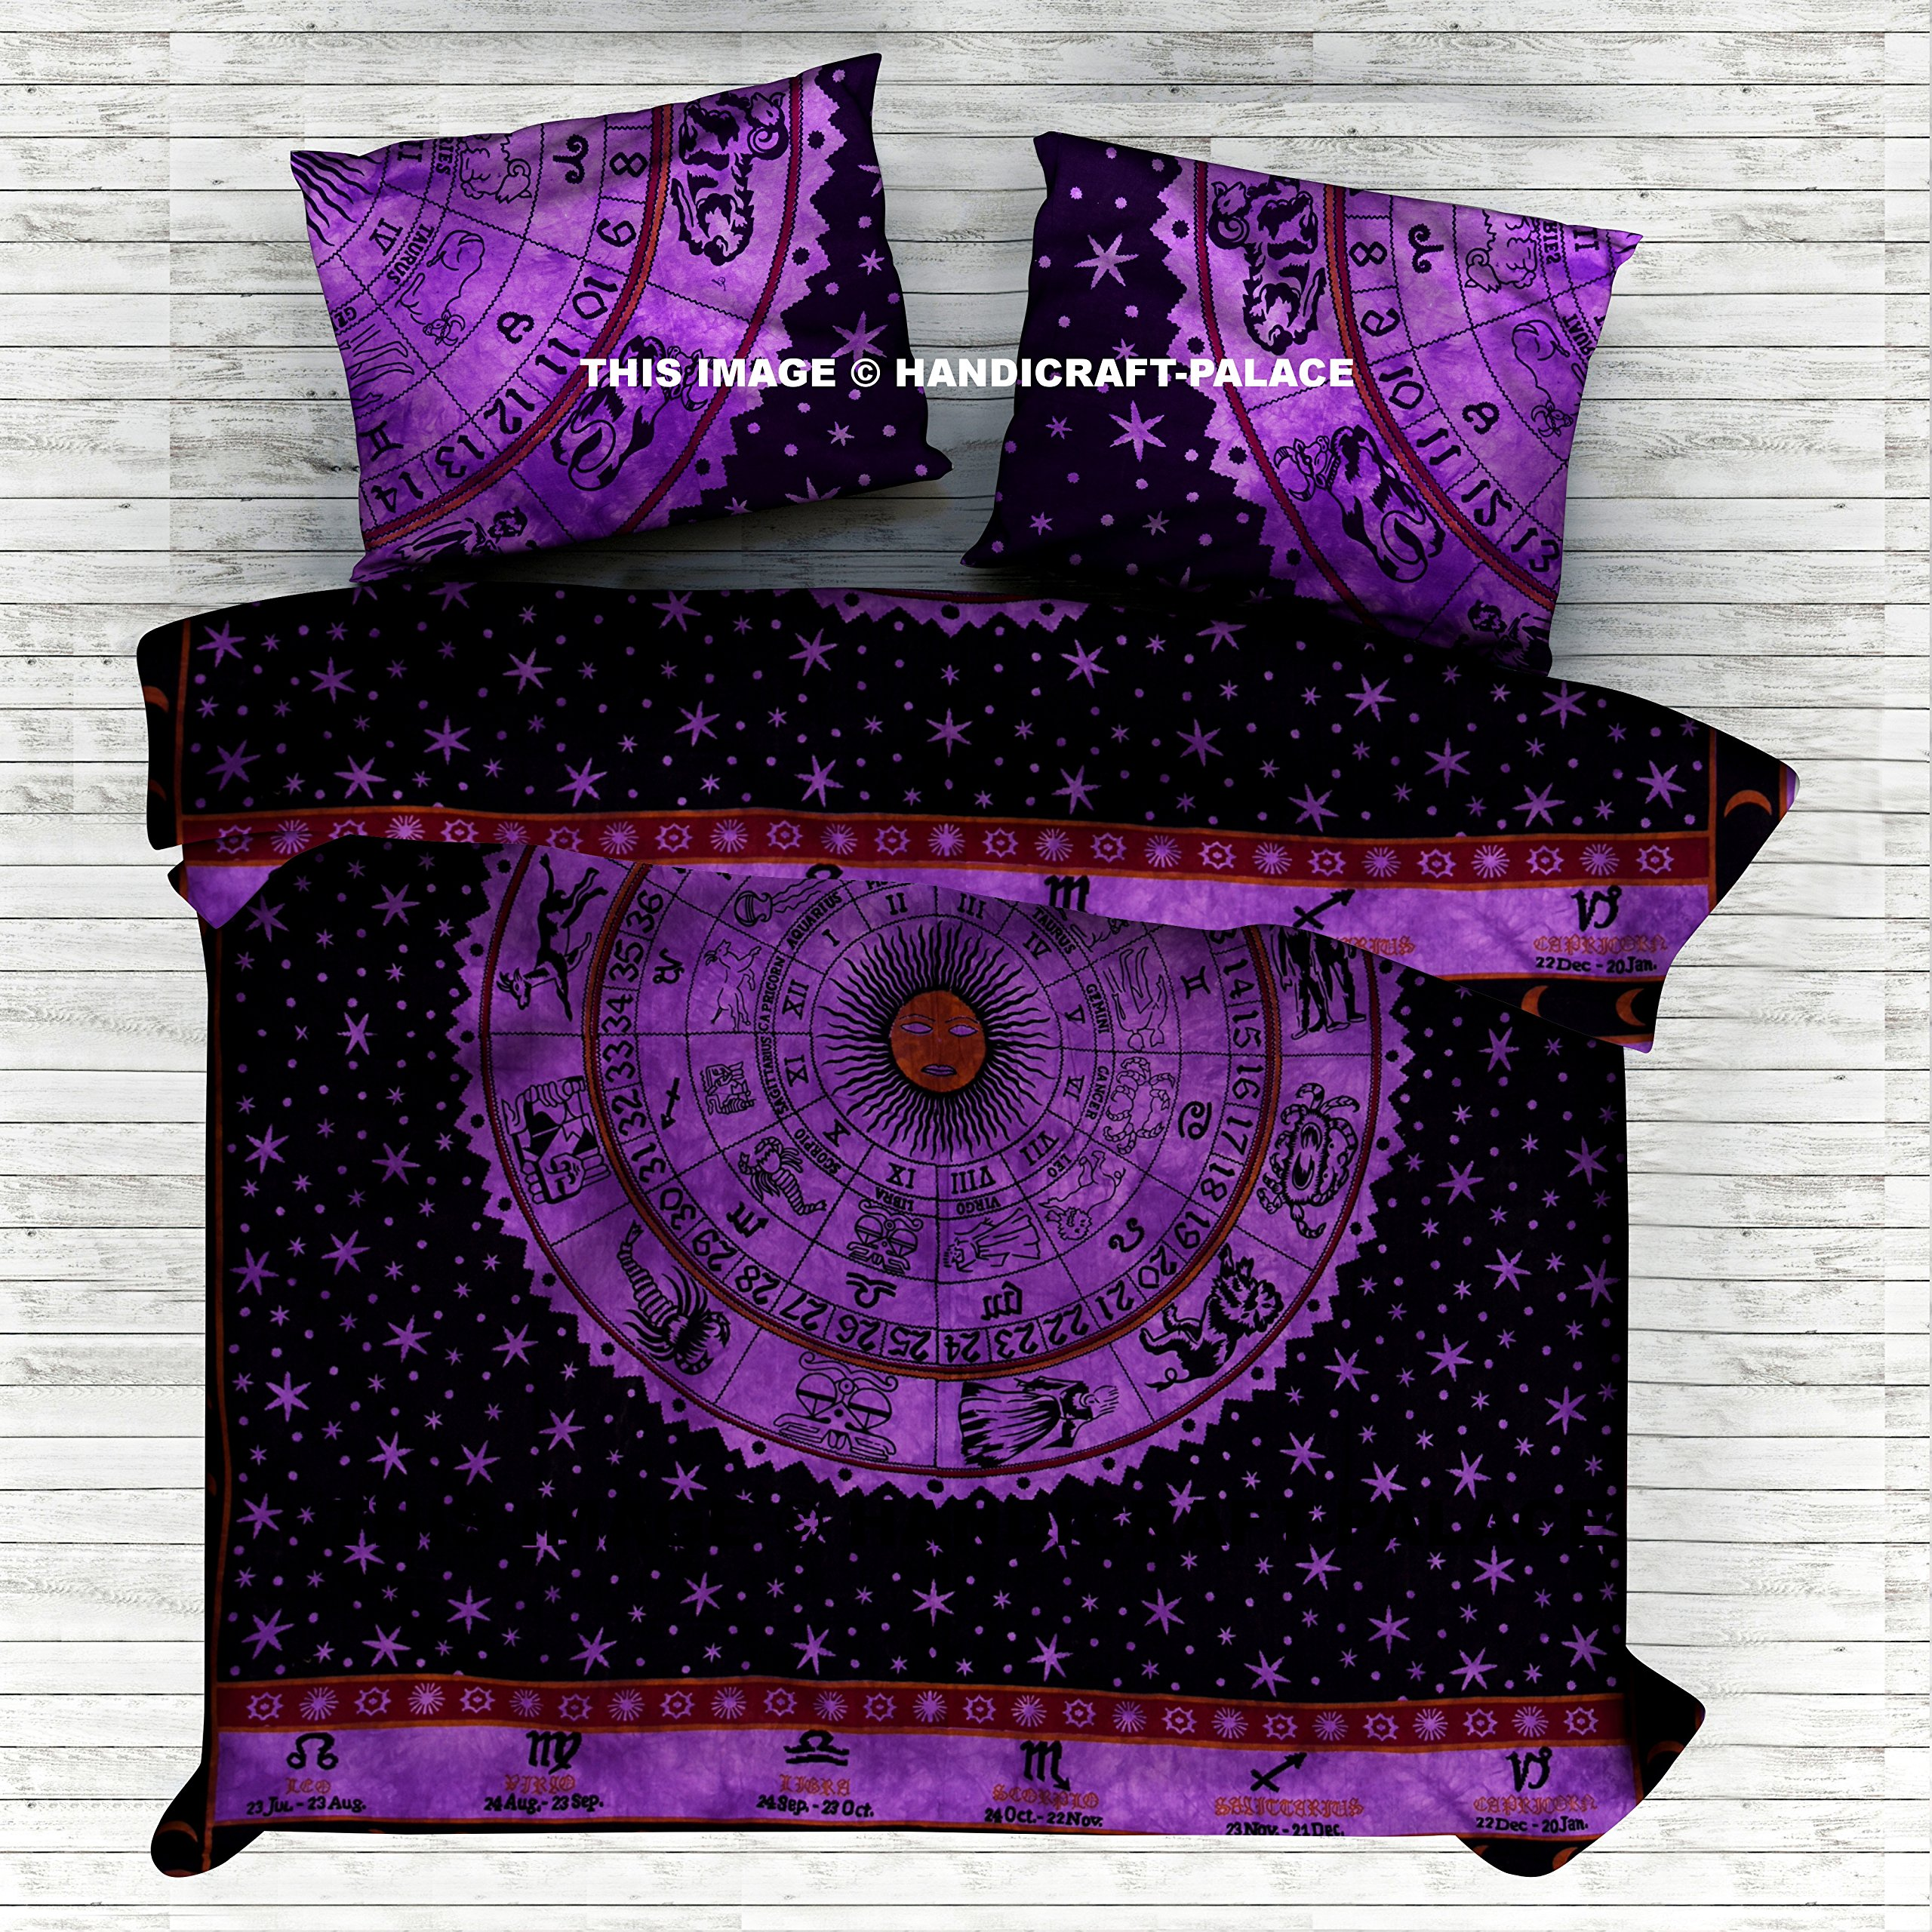 Indian Handmade Doona Cover Bohemian Cotton Duvet Cover, Astrology Mandala Comforter Cover, Quilt Cover, Donna Cover Set Boho Duvet Cover. Bohemian Bedspread By Handicraft-Palace